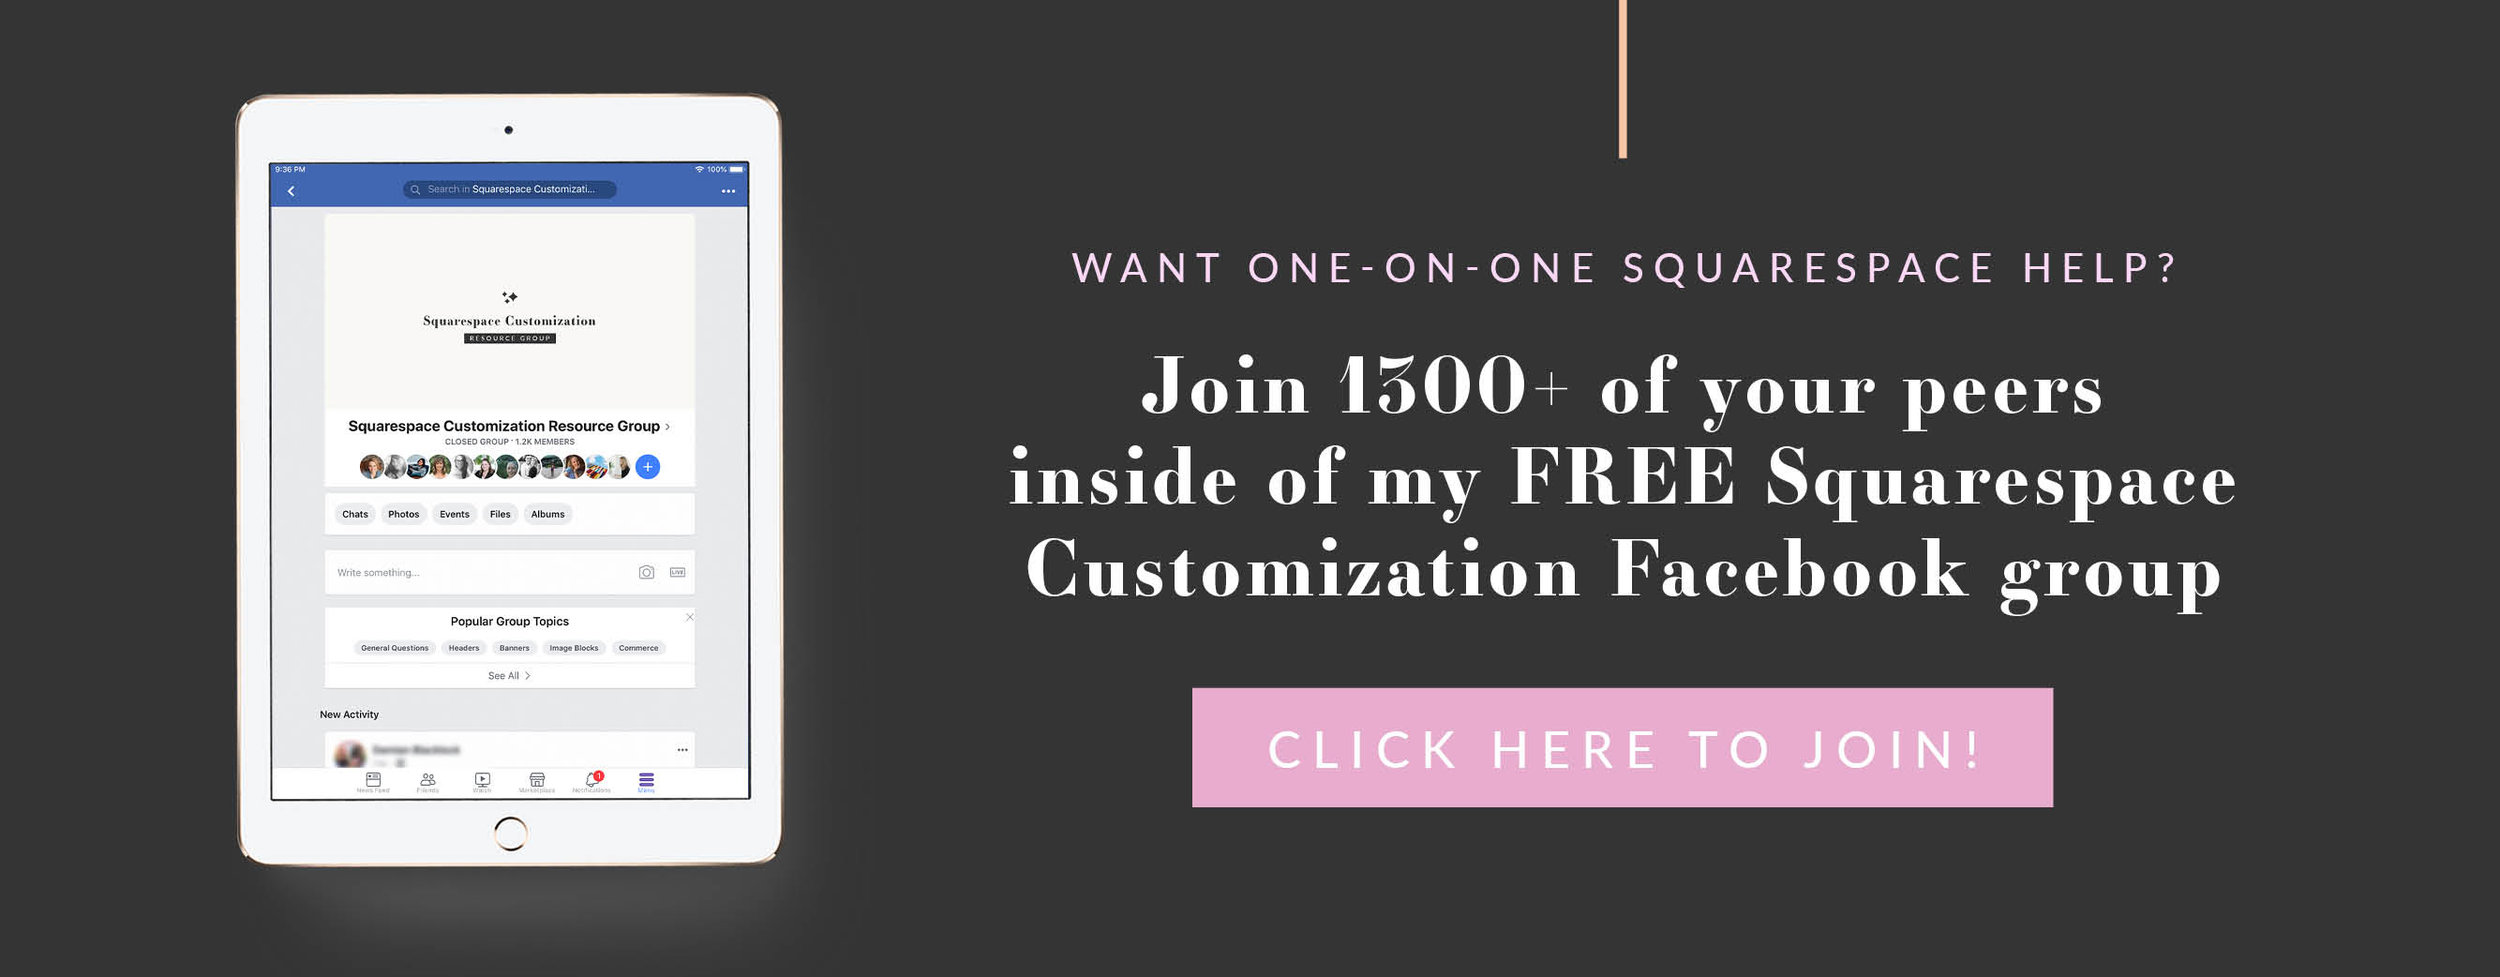 Click here to get free customization help for your Squarespace website inside my free Facebook group